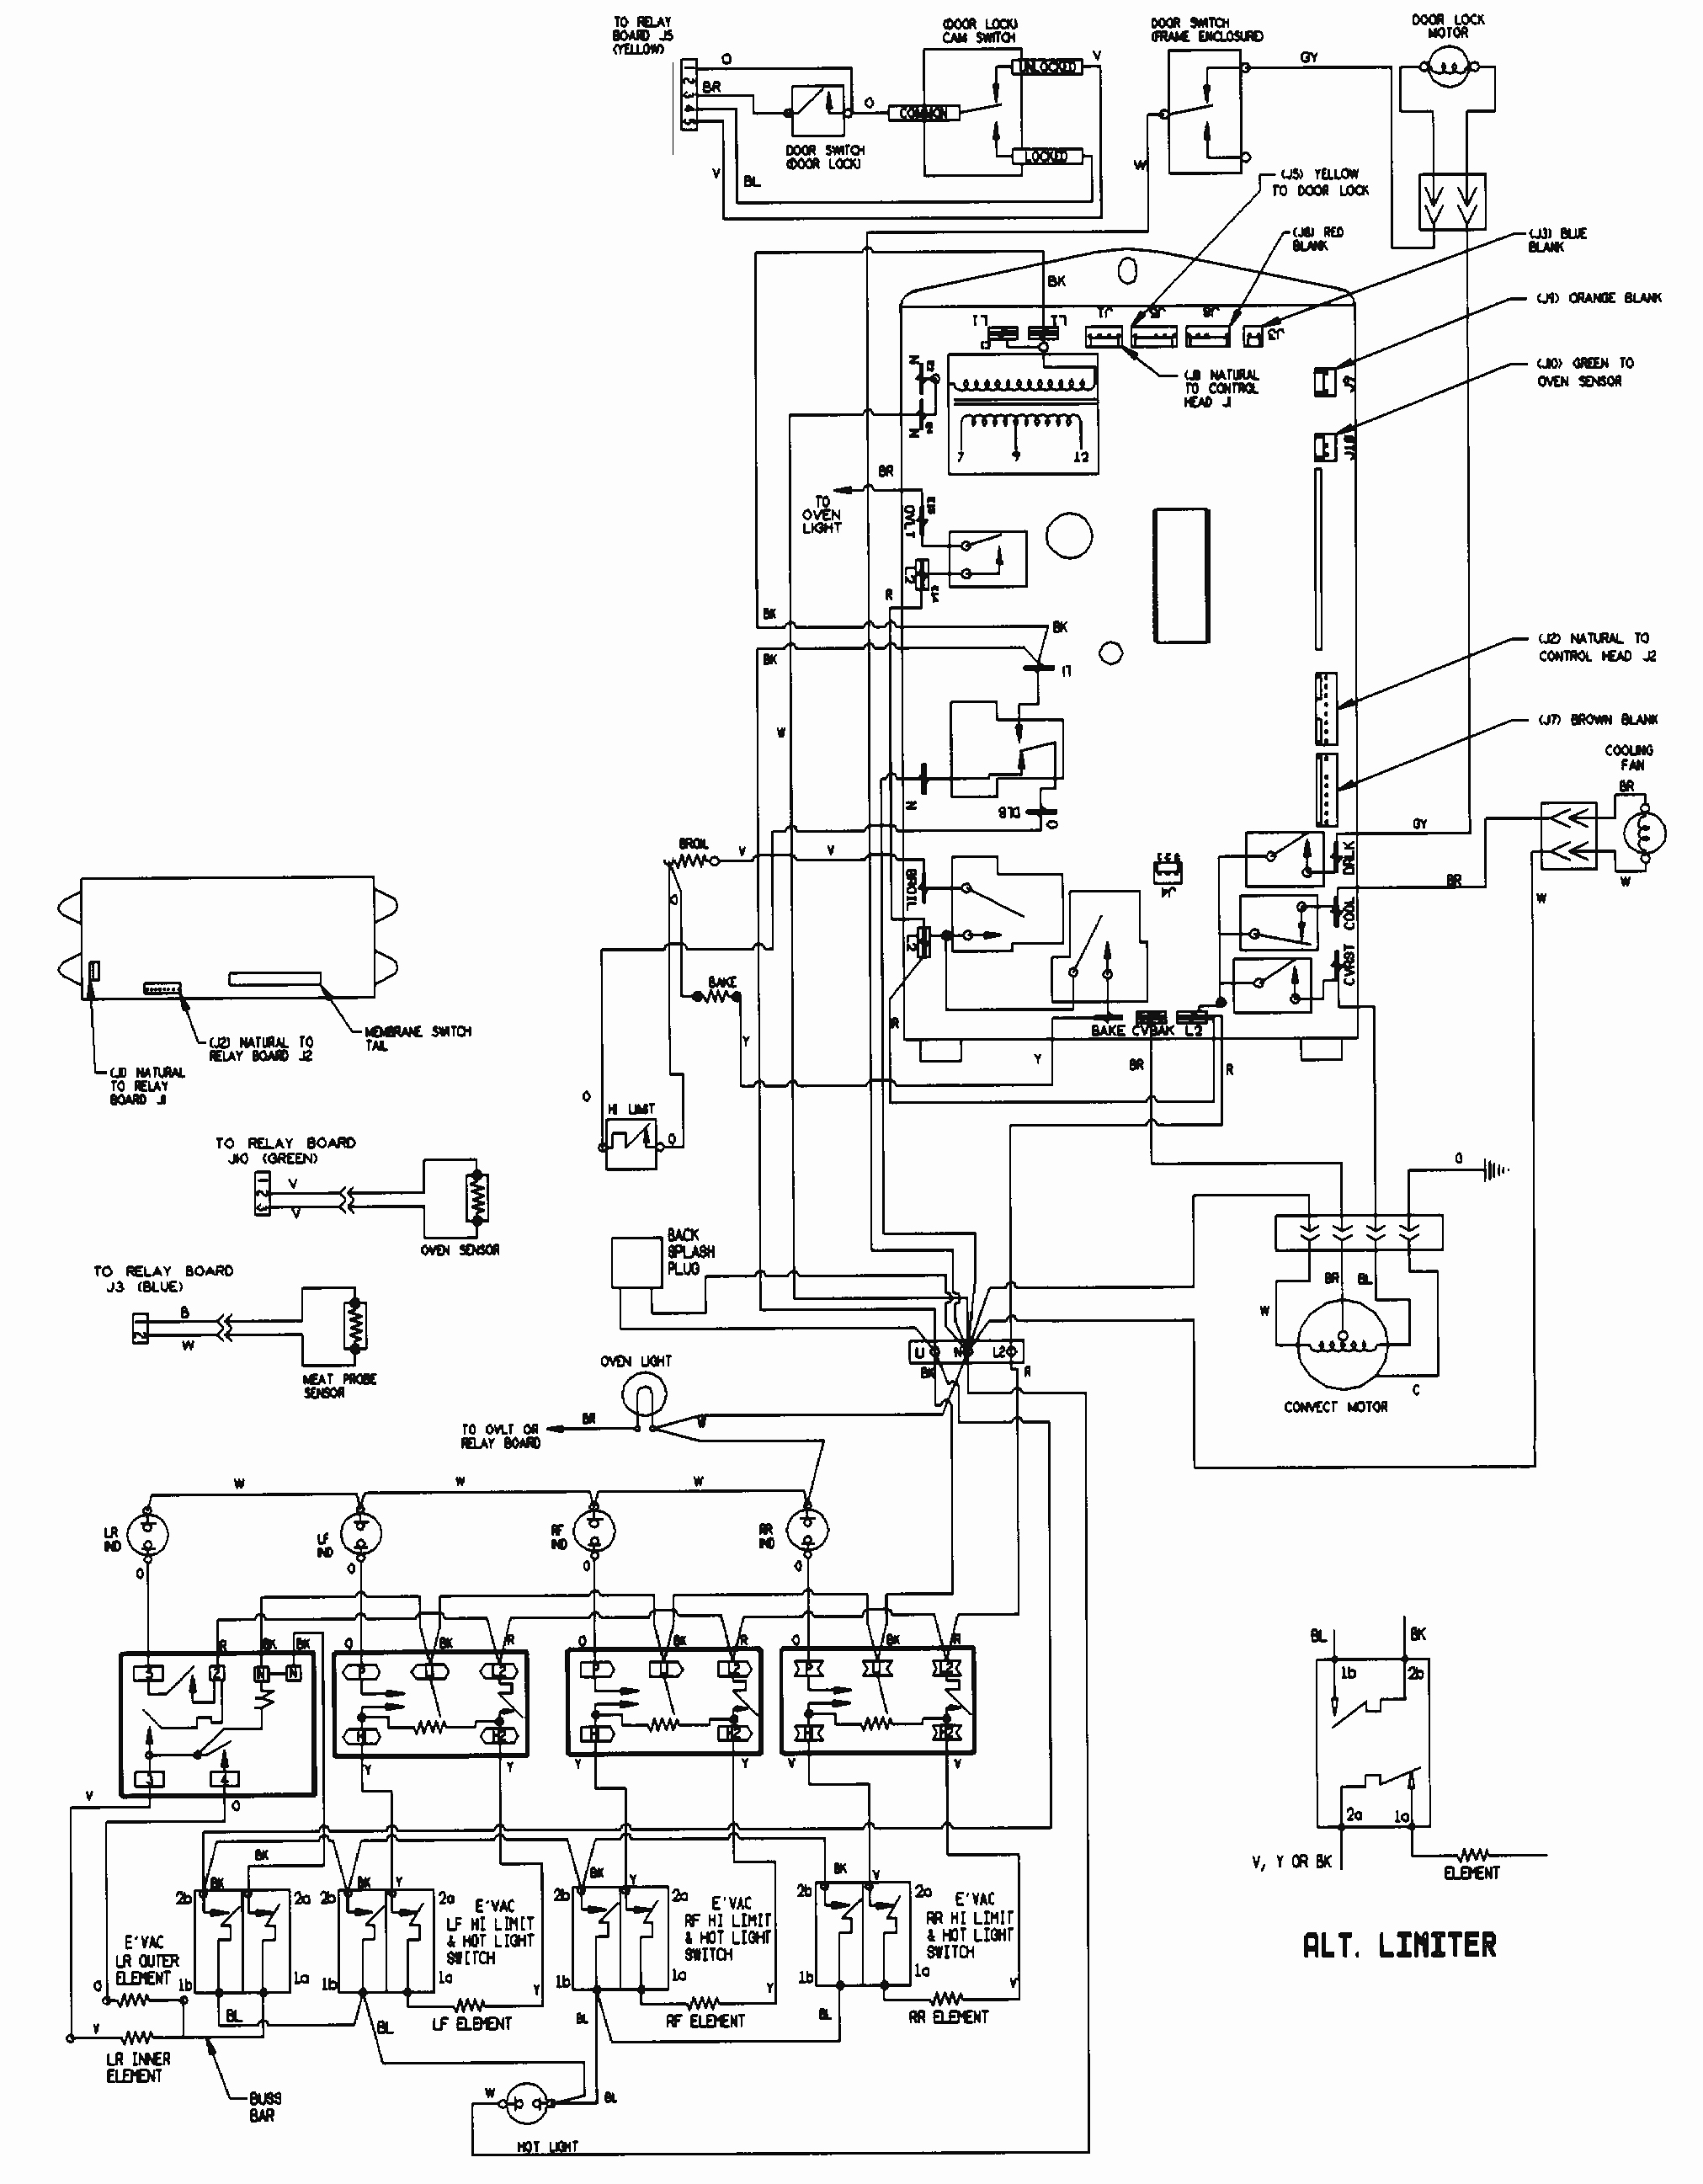 wiring diagram for house house wiring diagram pool timer wiring